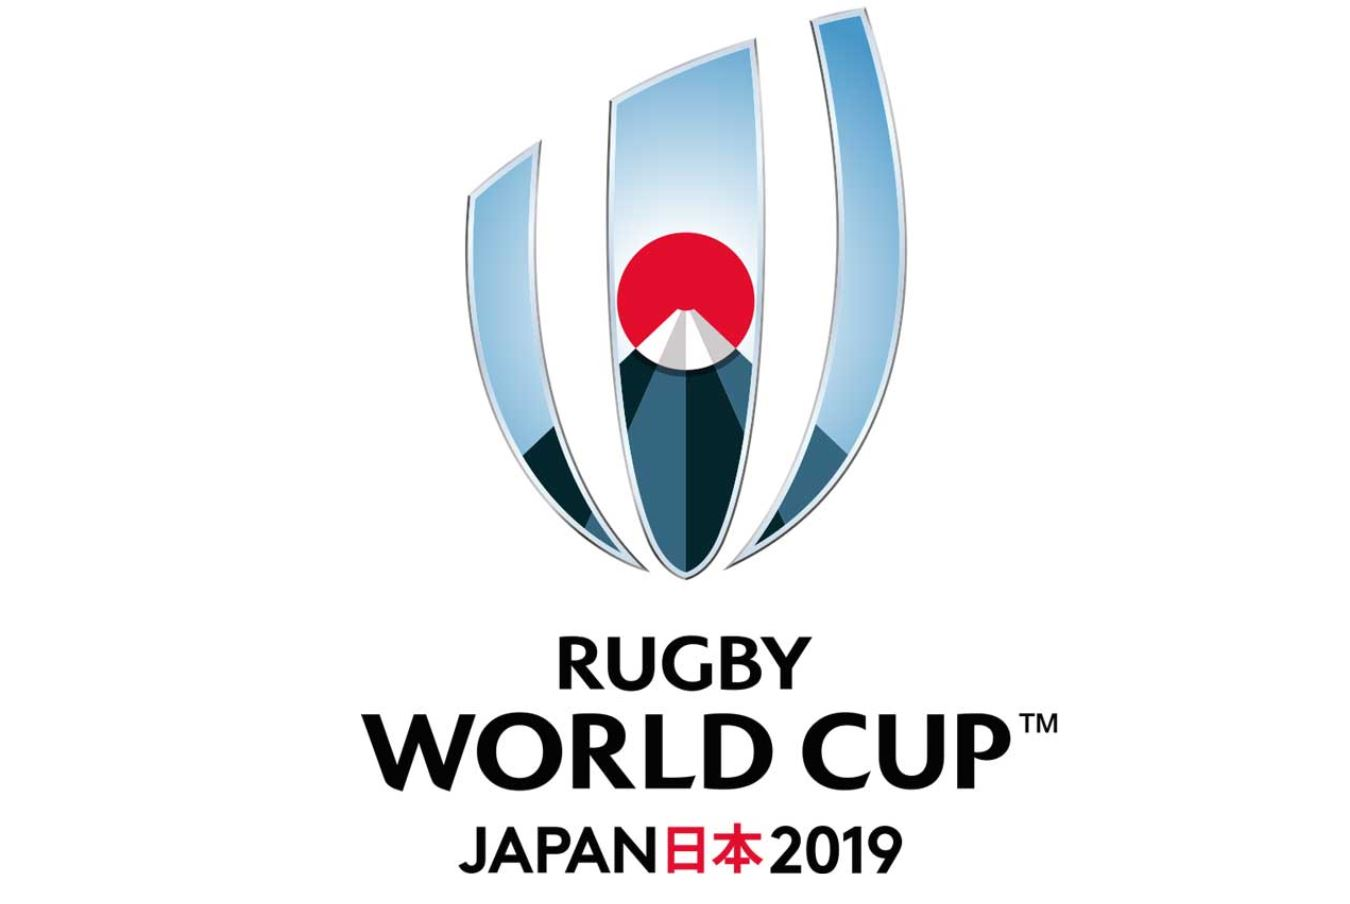 Join us to watch the Rugby World Cup